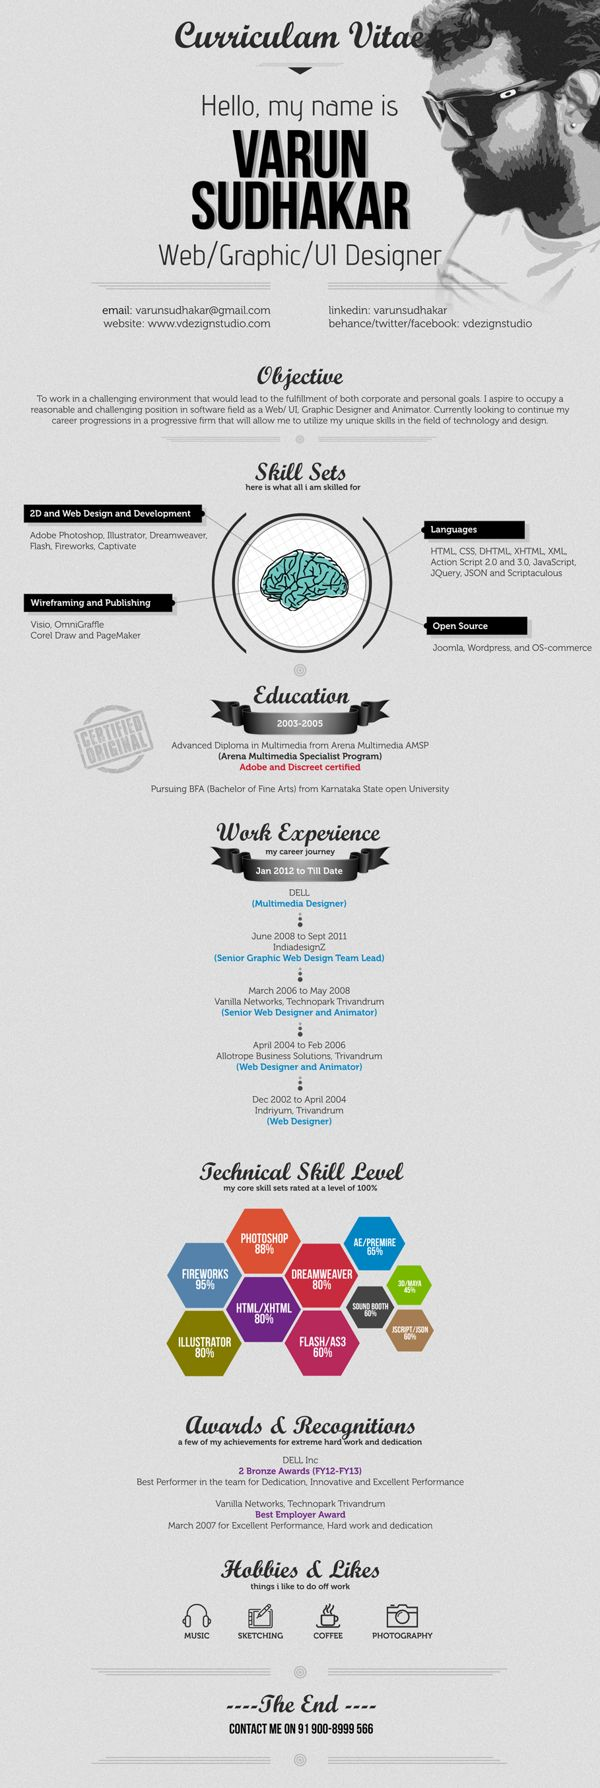 17 best images about infographic resume on